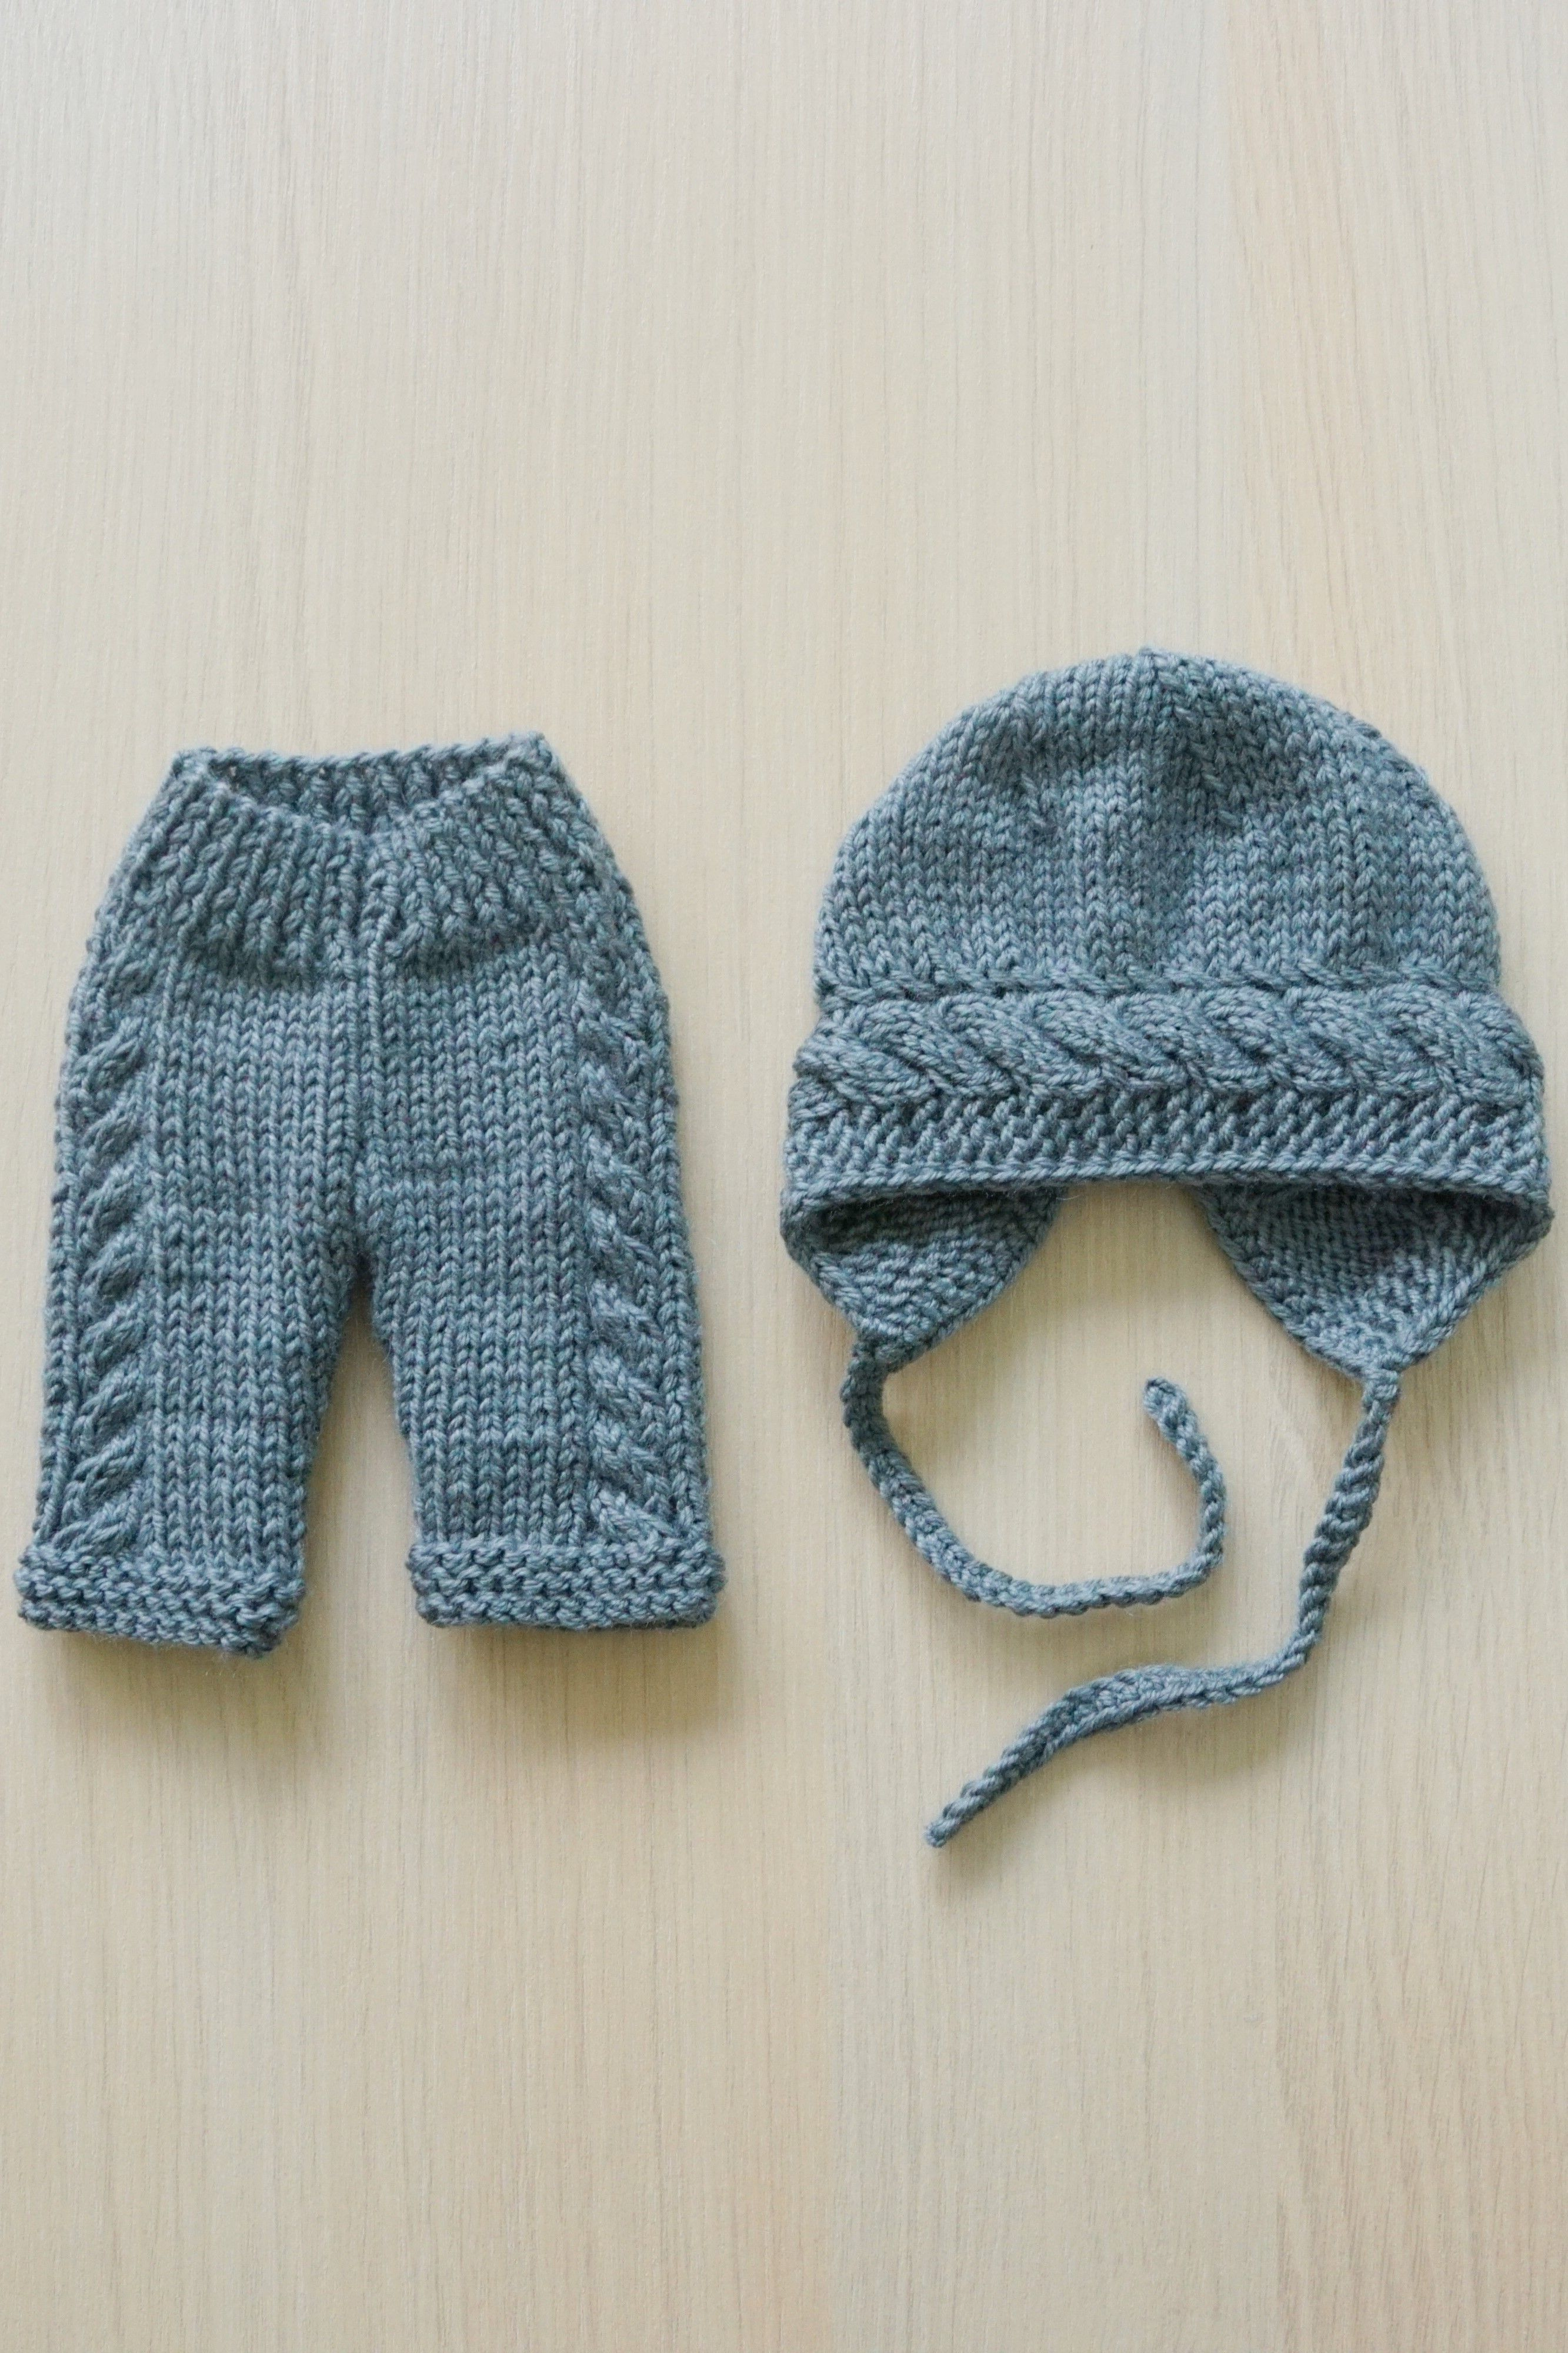 Baby Born dolls clothing set - hat and pants. Fit 43 cm (17 inch) baby doll. Baby doll knitting.